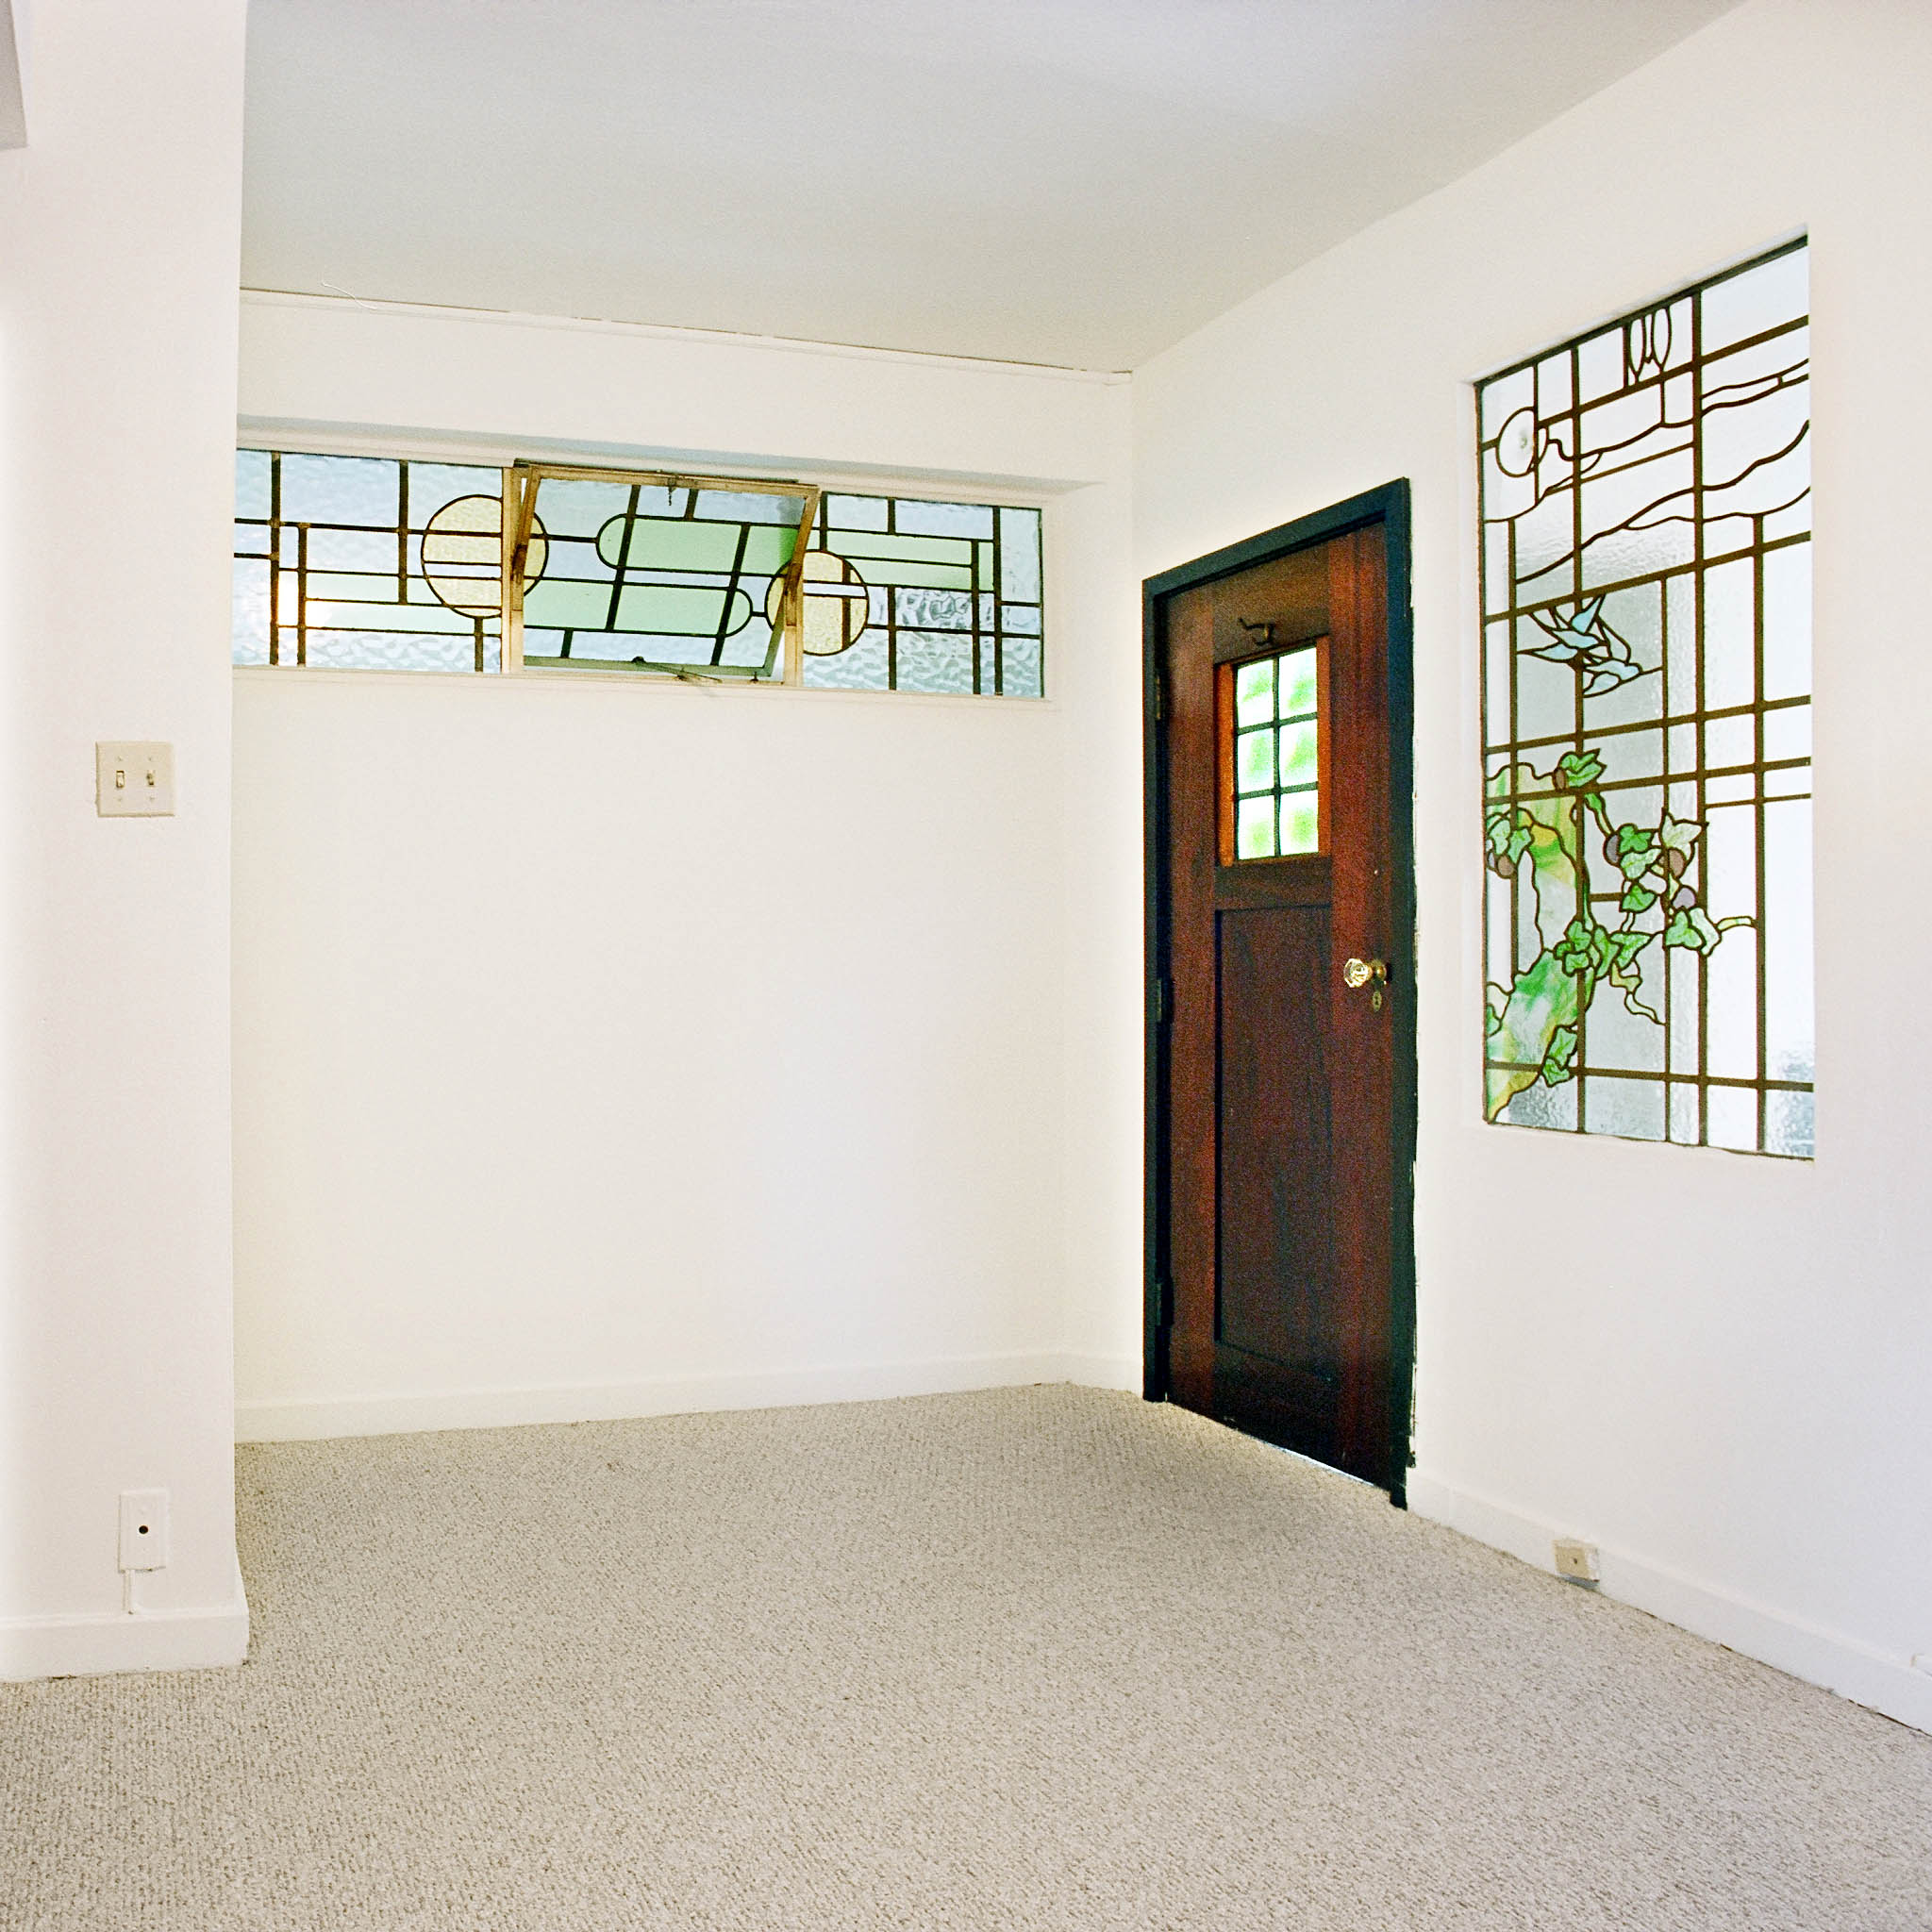 interior of 340 S. Highland Ave, Apt. 3A 7